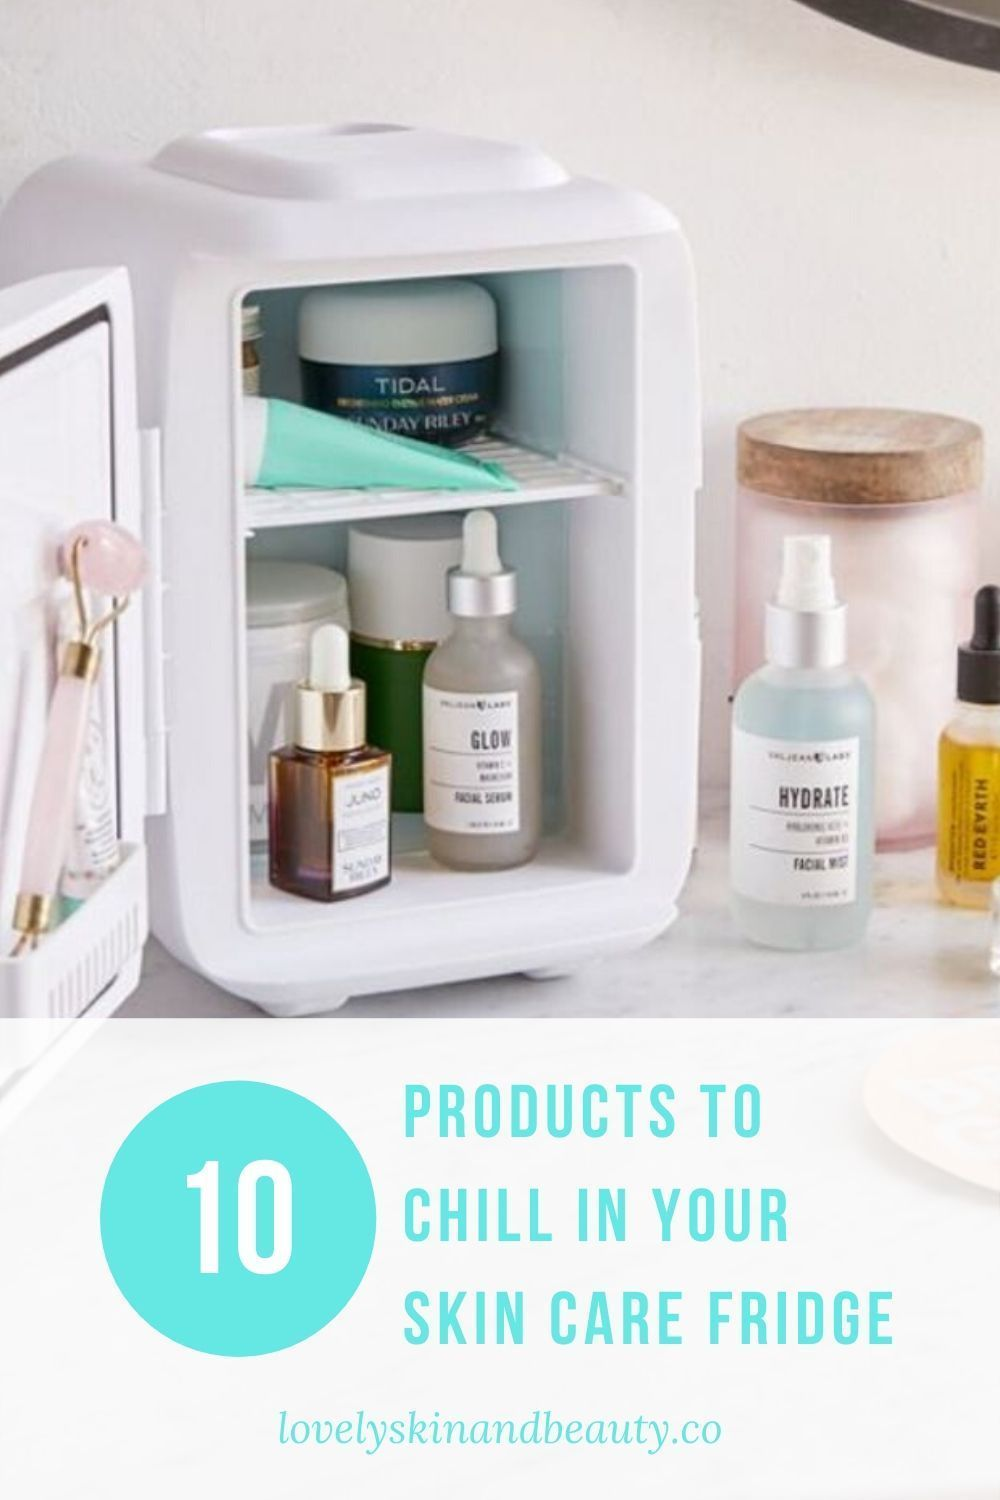 10 Products To Chill In Your Skin Care Fridge What To Put In A Mini Skin Care Fridge The Best Produ Diy Skin Care Recipes Skin Care Winter Skin Care Routine